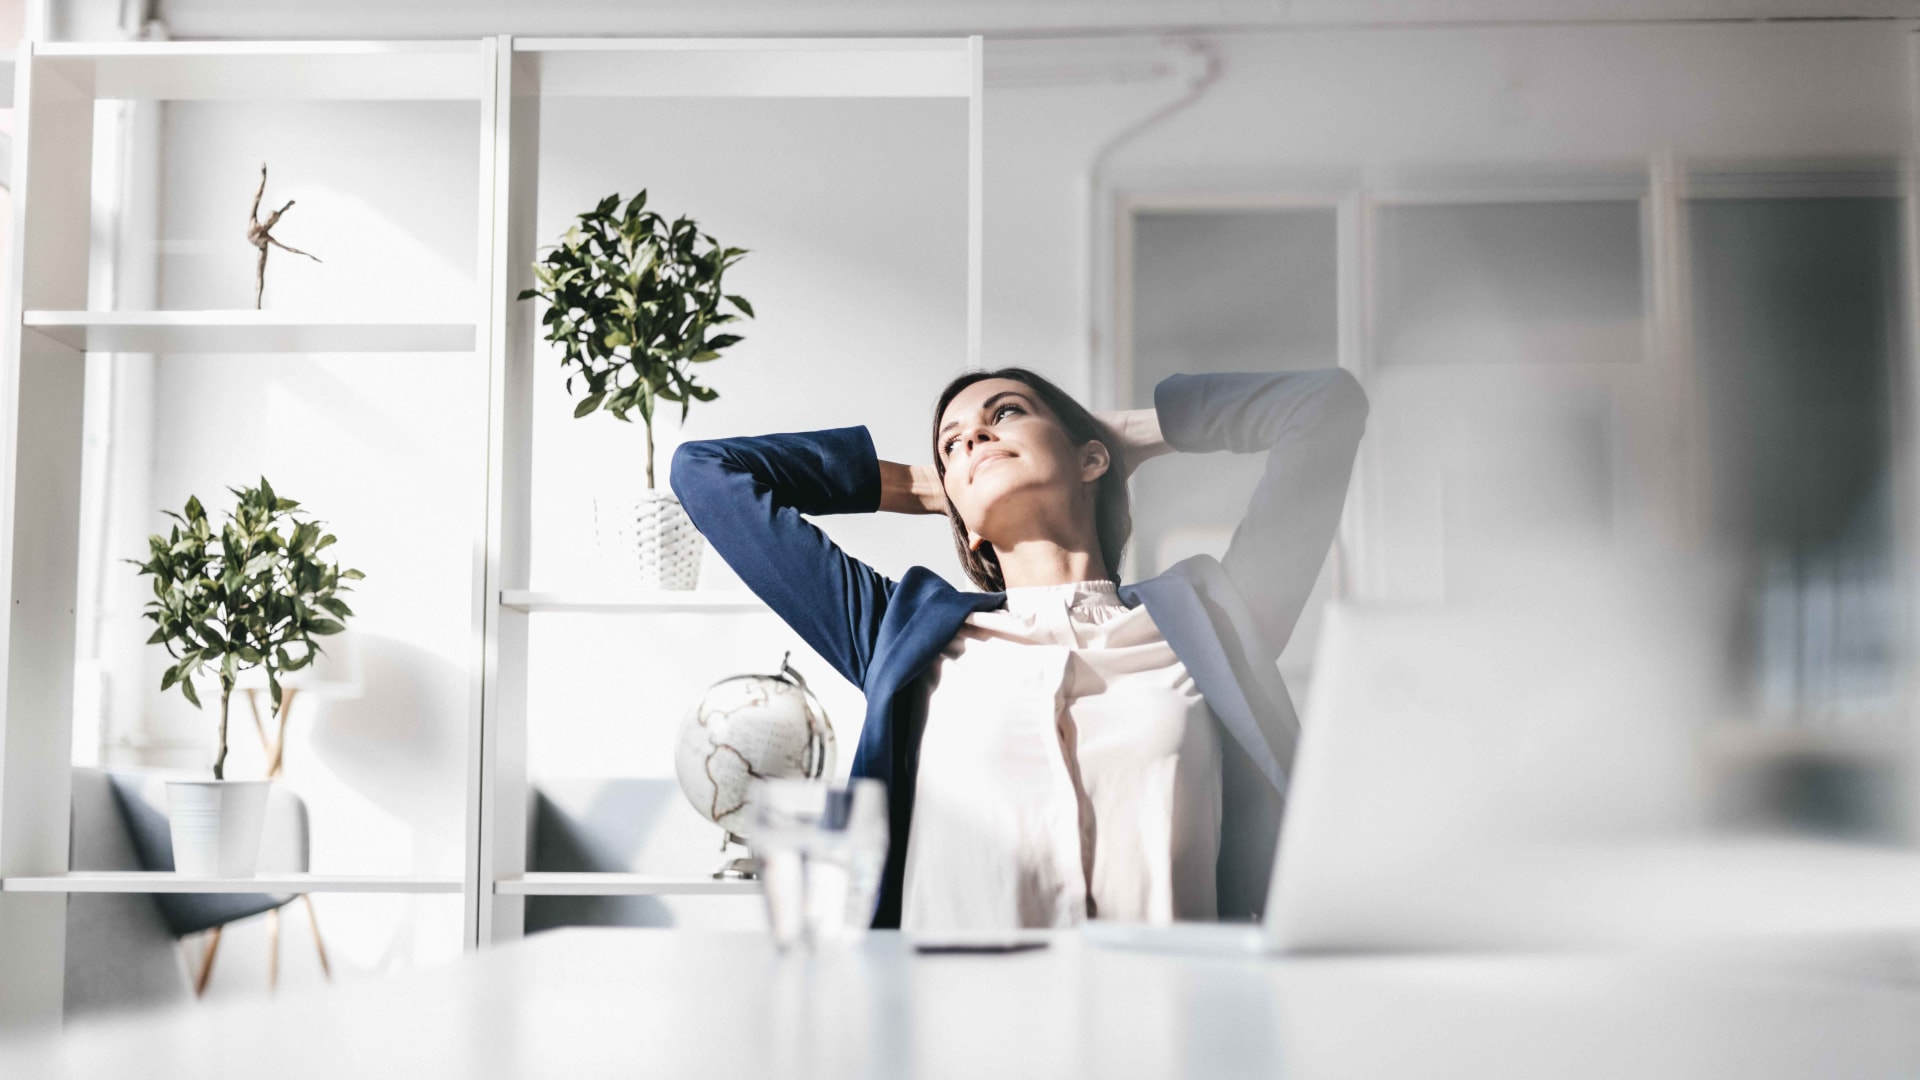 8 Simple Ways to Reduce Employee Anxiety